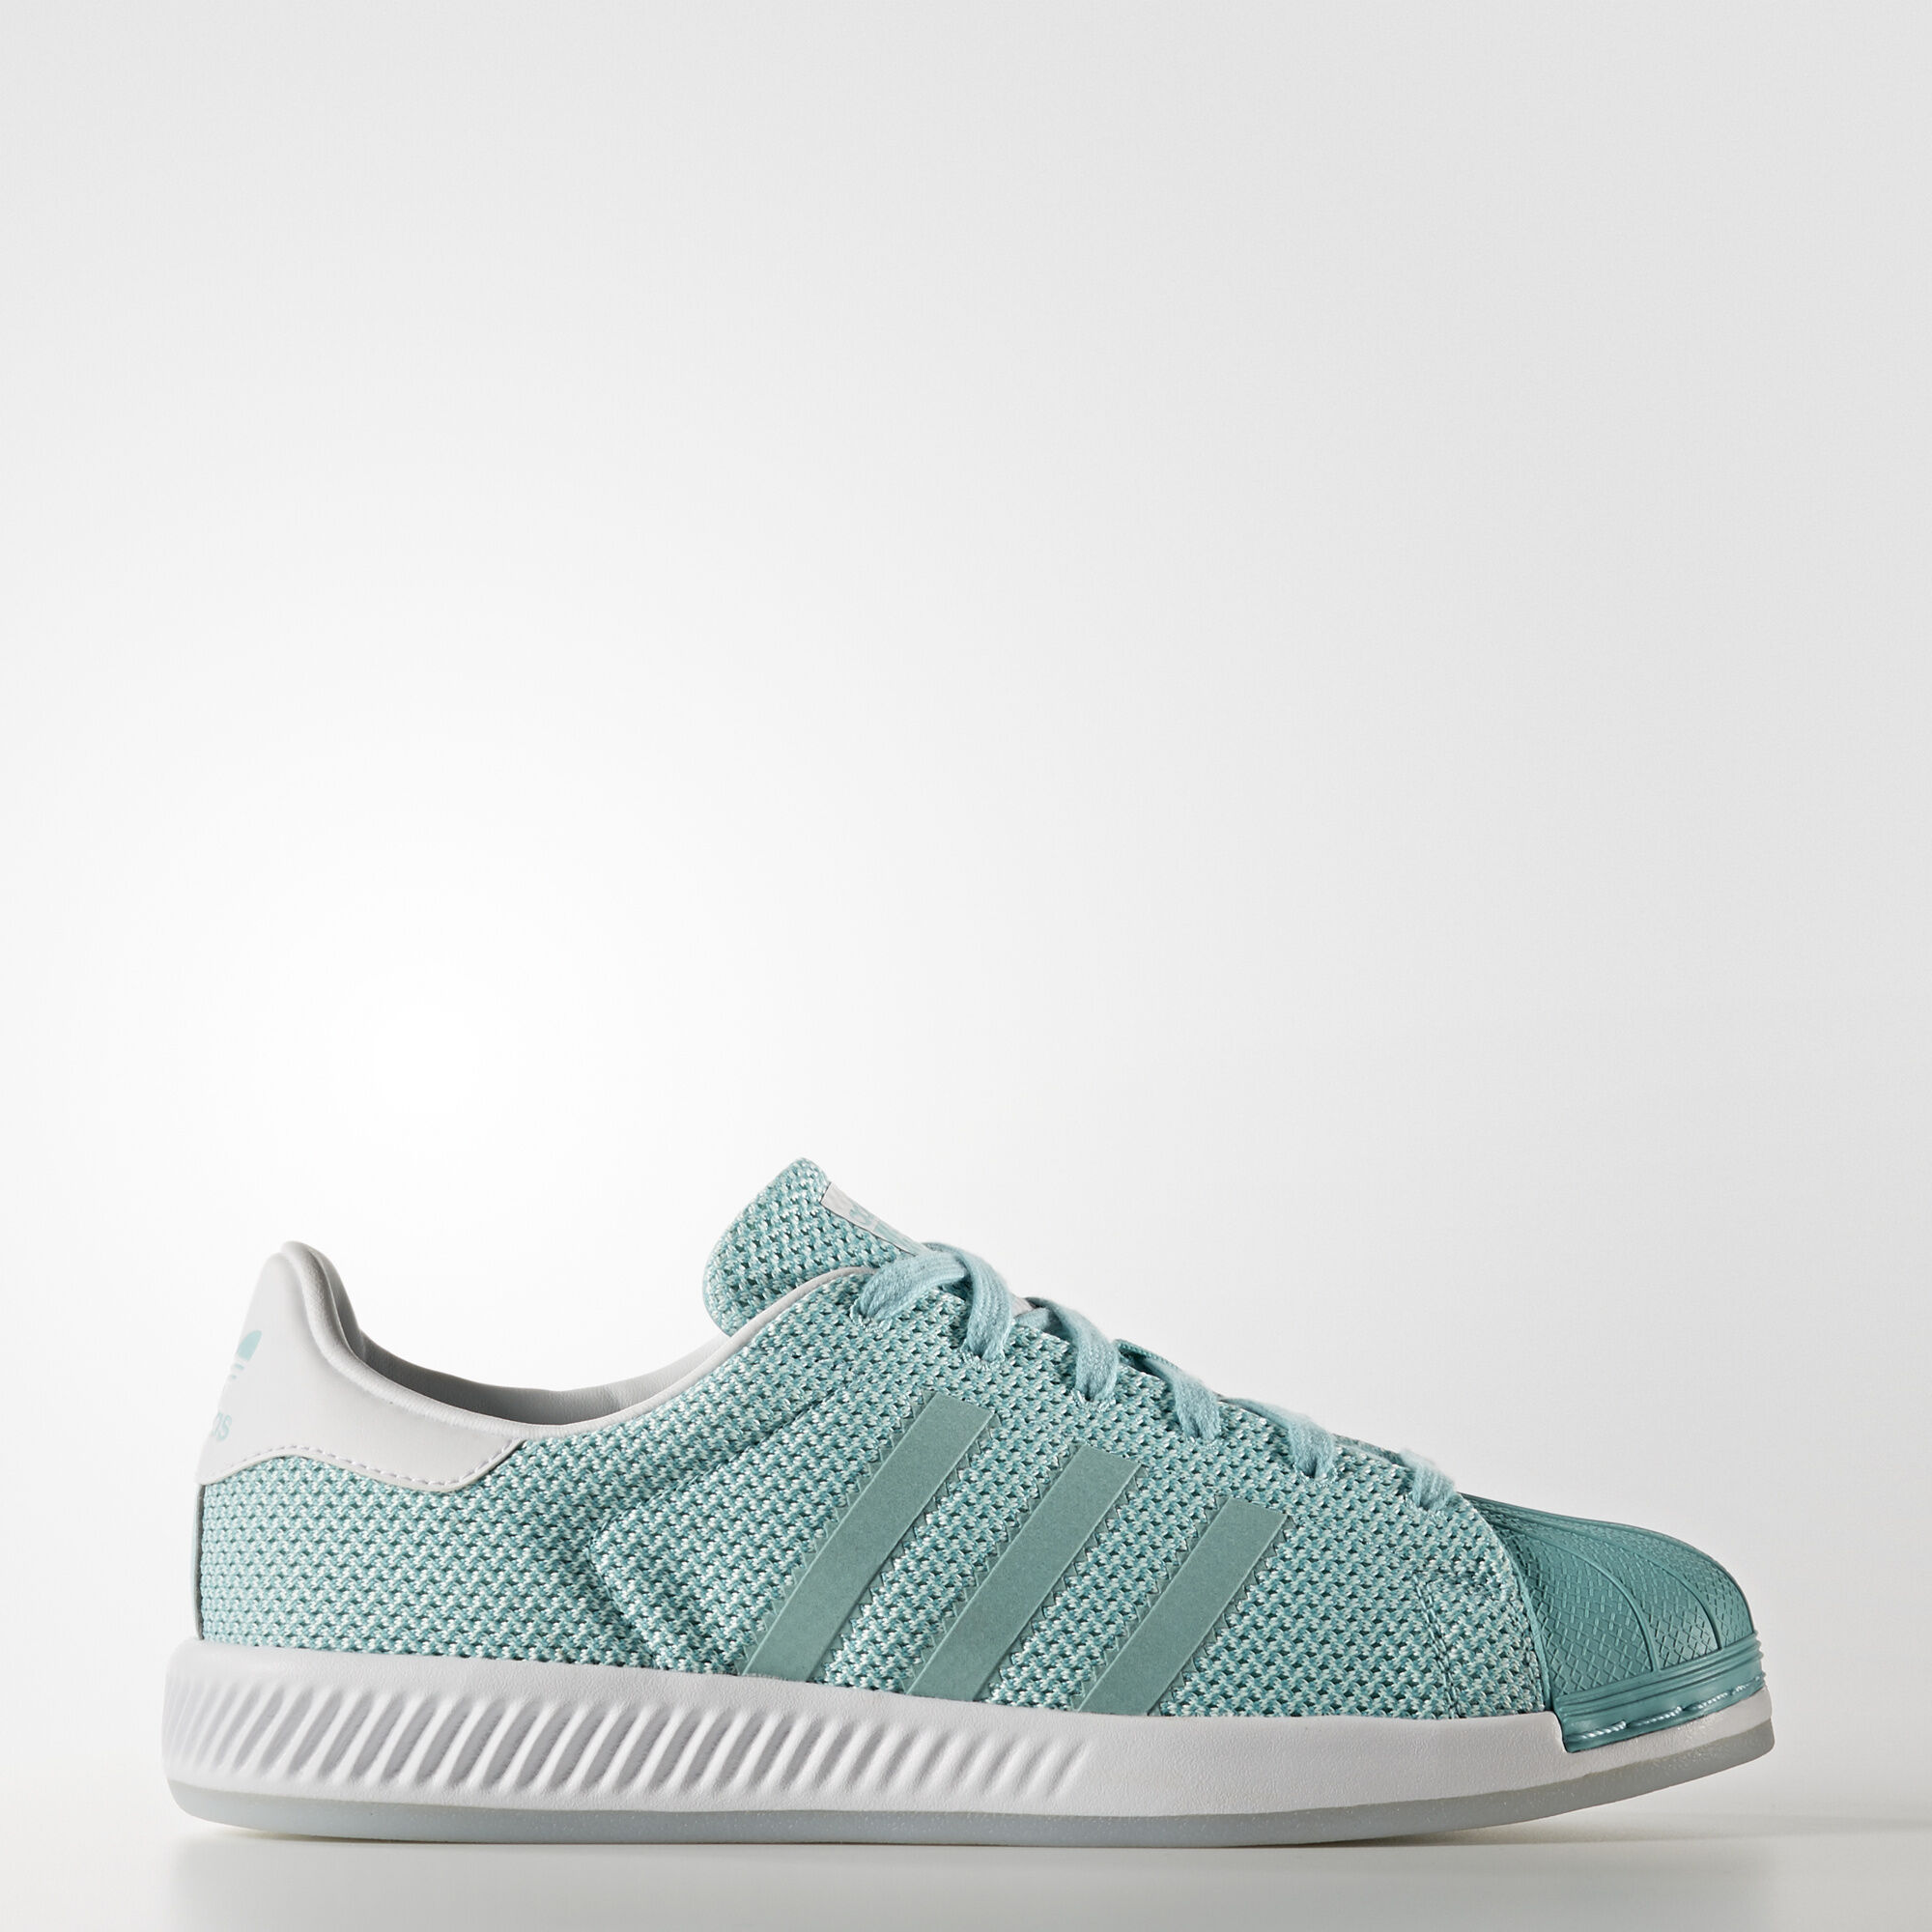 Adidas Superstar In Blau